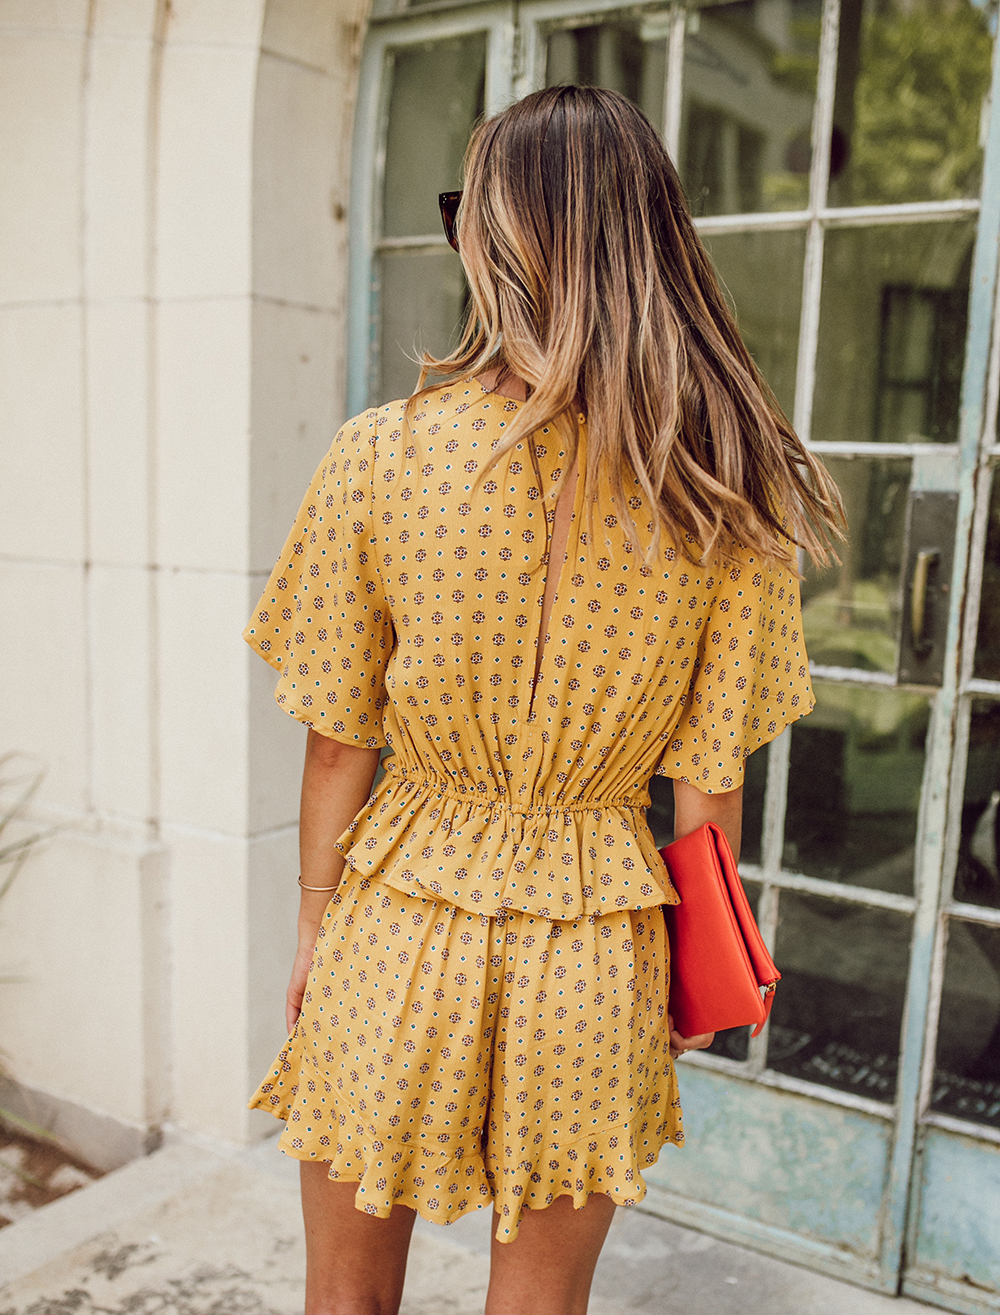 livvyland-blog-olivia-watson-austin-texas-fashion-lifestyle-blogger-river-island-floral-print-yellow-knot-front-romper-summer-occasion-outfit-idea-1